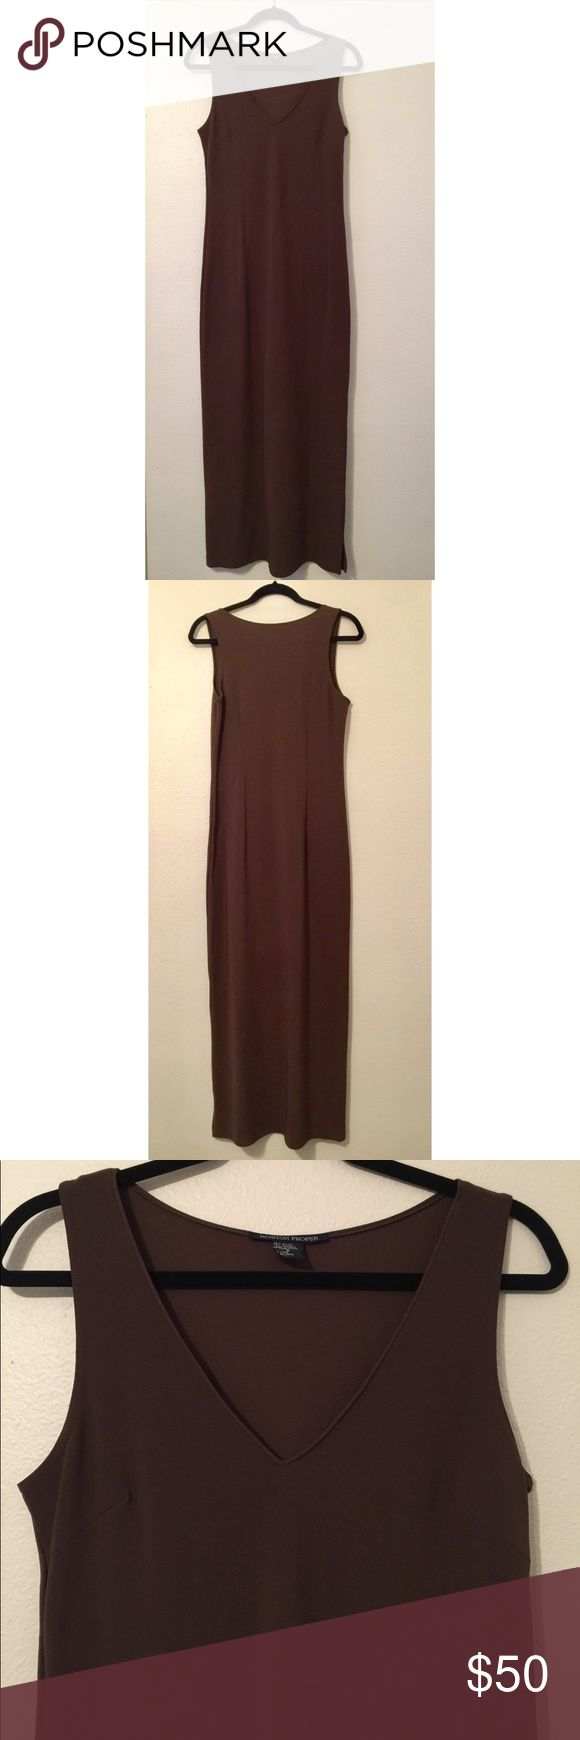 """BOSTON PROPER size small dark brown maxi dress Absolutely beautiful!! Dark brown BOSTON PROPER size small maxi dress with side slit. No flaws, excellent condition!   45.5"""" v-neck point down to bottom hem 55"""" top of shoulder to bottom hem 45.25"""" side seam 10.5"""" v neck depth 52.5"""" back length 18"""" slit (left side) Boston Proper Dresses Maxi"""